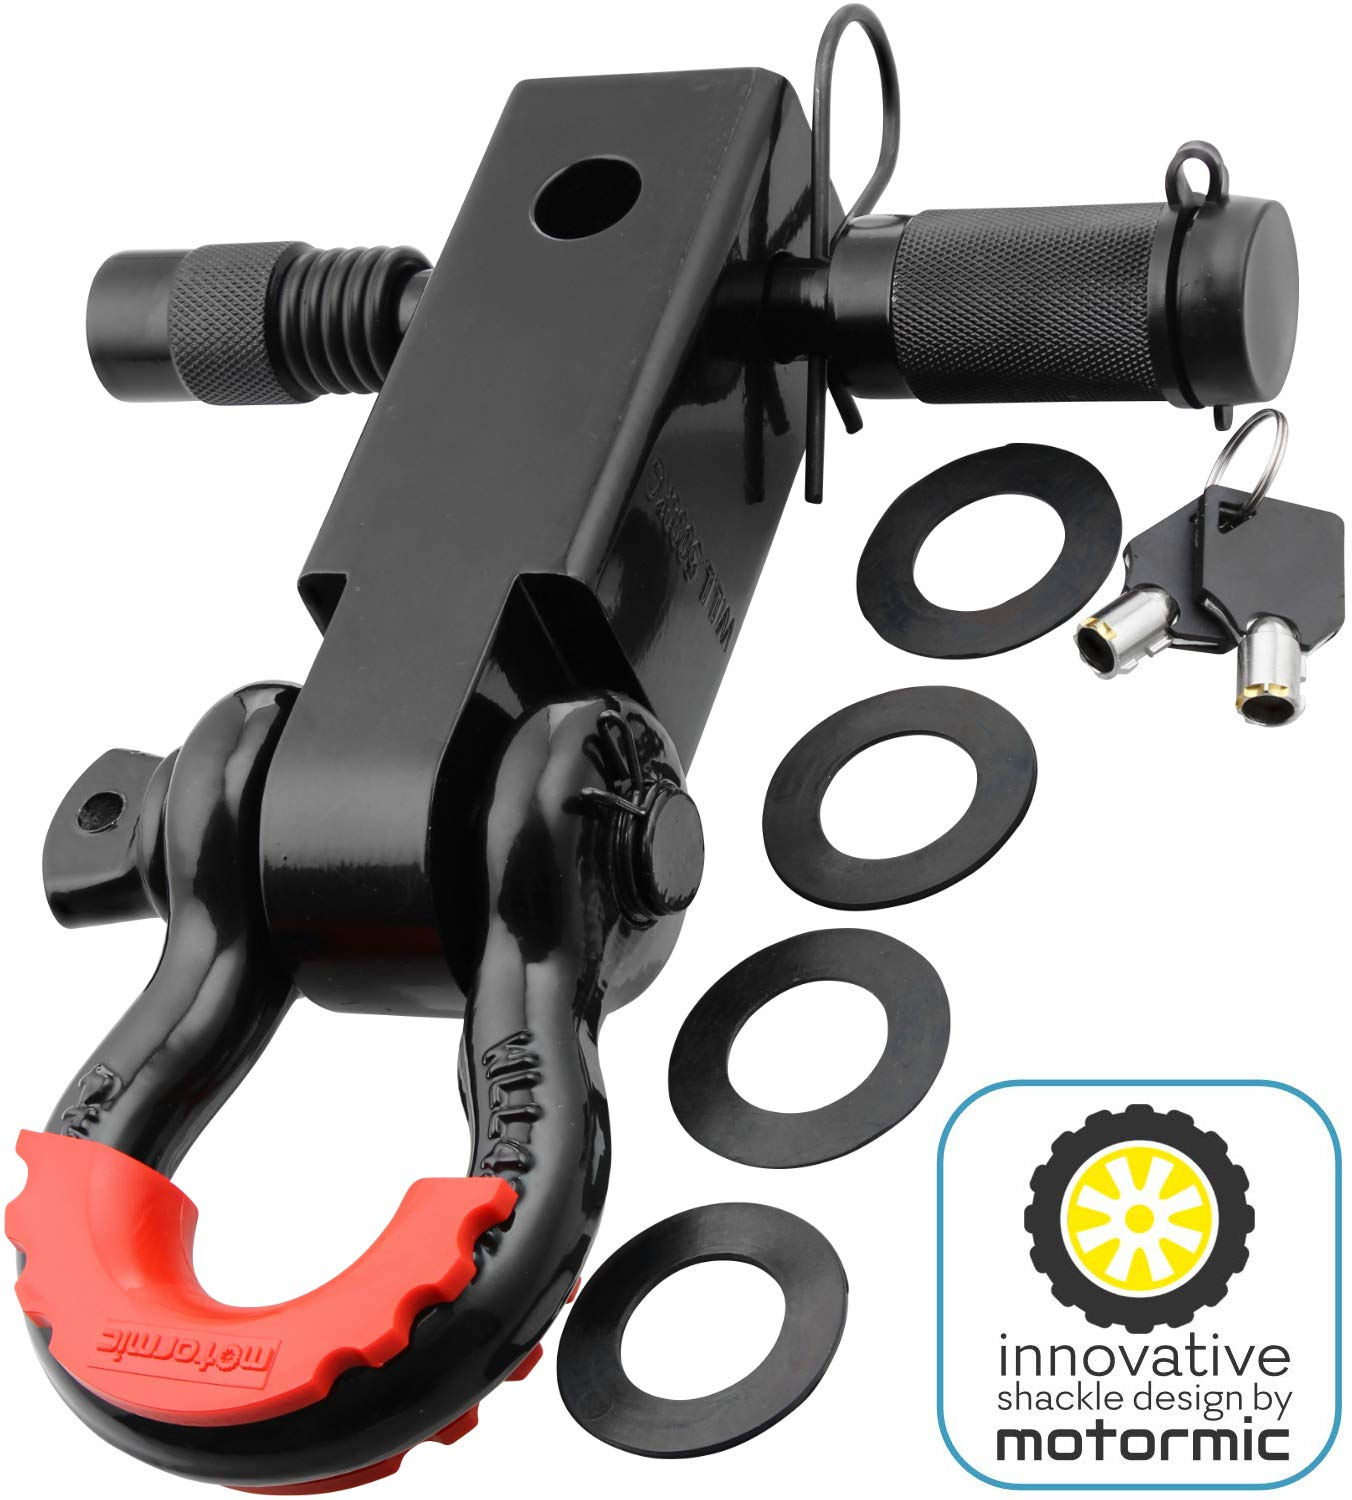 Motormic Shackle Hitch Receiver 2 inch with 5/8' Trailer Lock Pin and 3/4' D Shackle (35,000 lbs Max Capacity) – Heavy Duty Off Road Recovery Black D Ring with 4 rubber washers and Red Isolator for Jeep, Truck, Pick up Motormic 1703